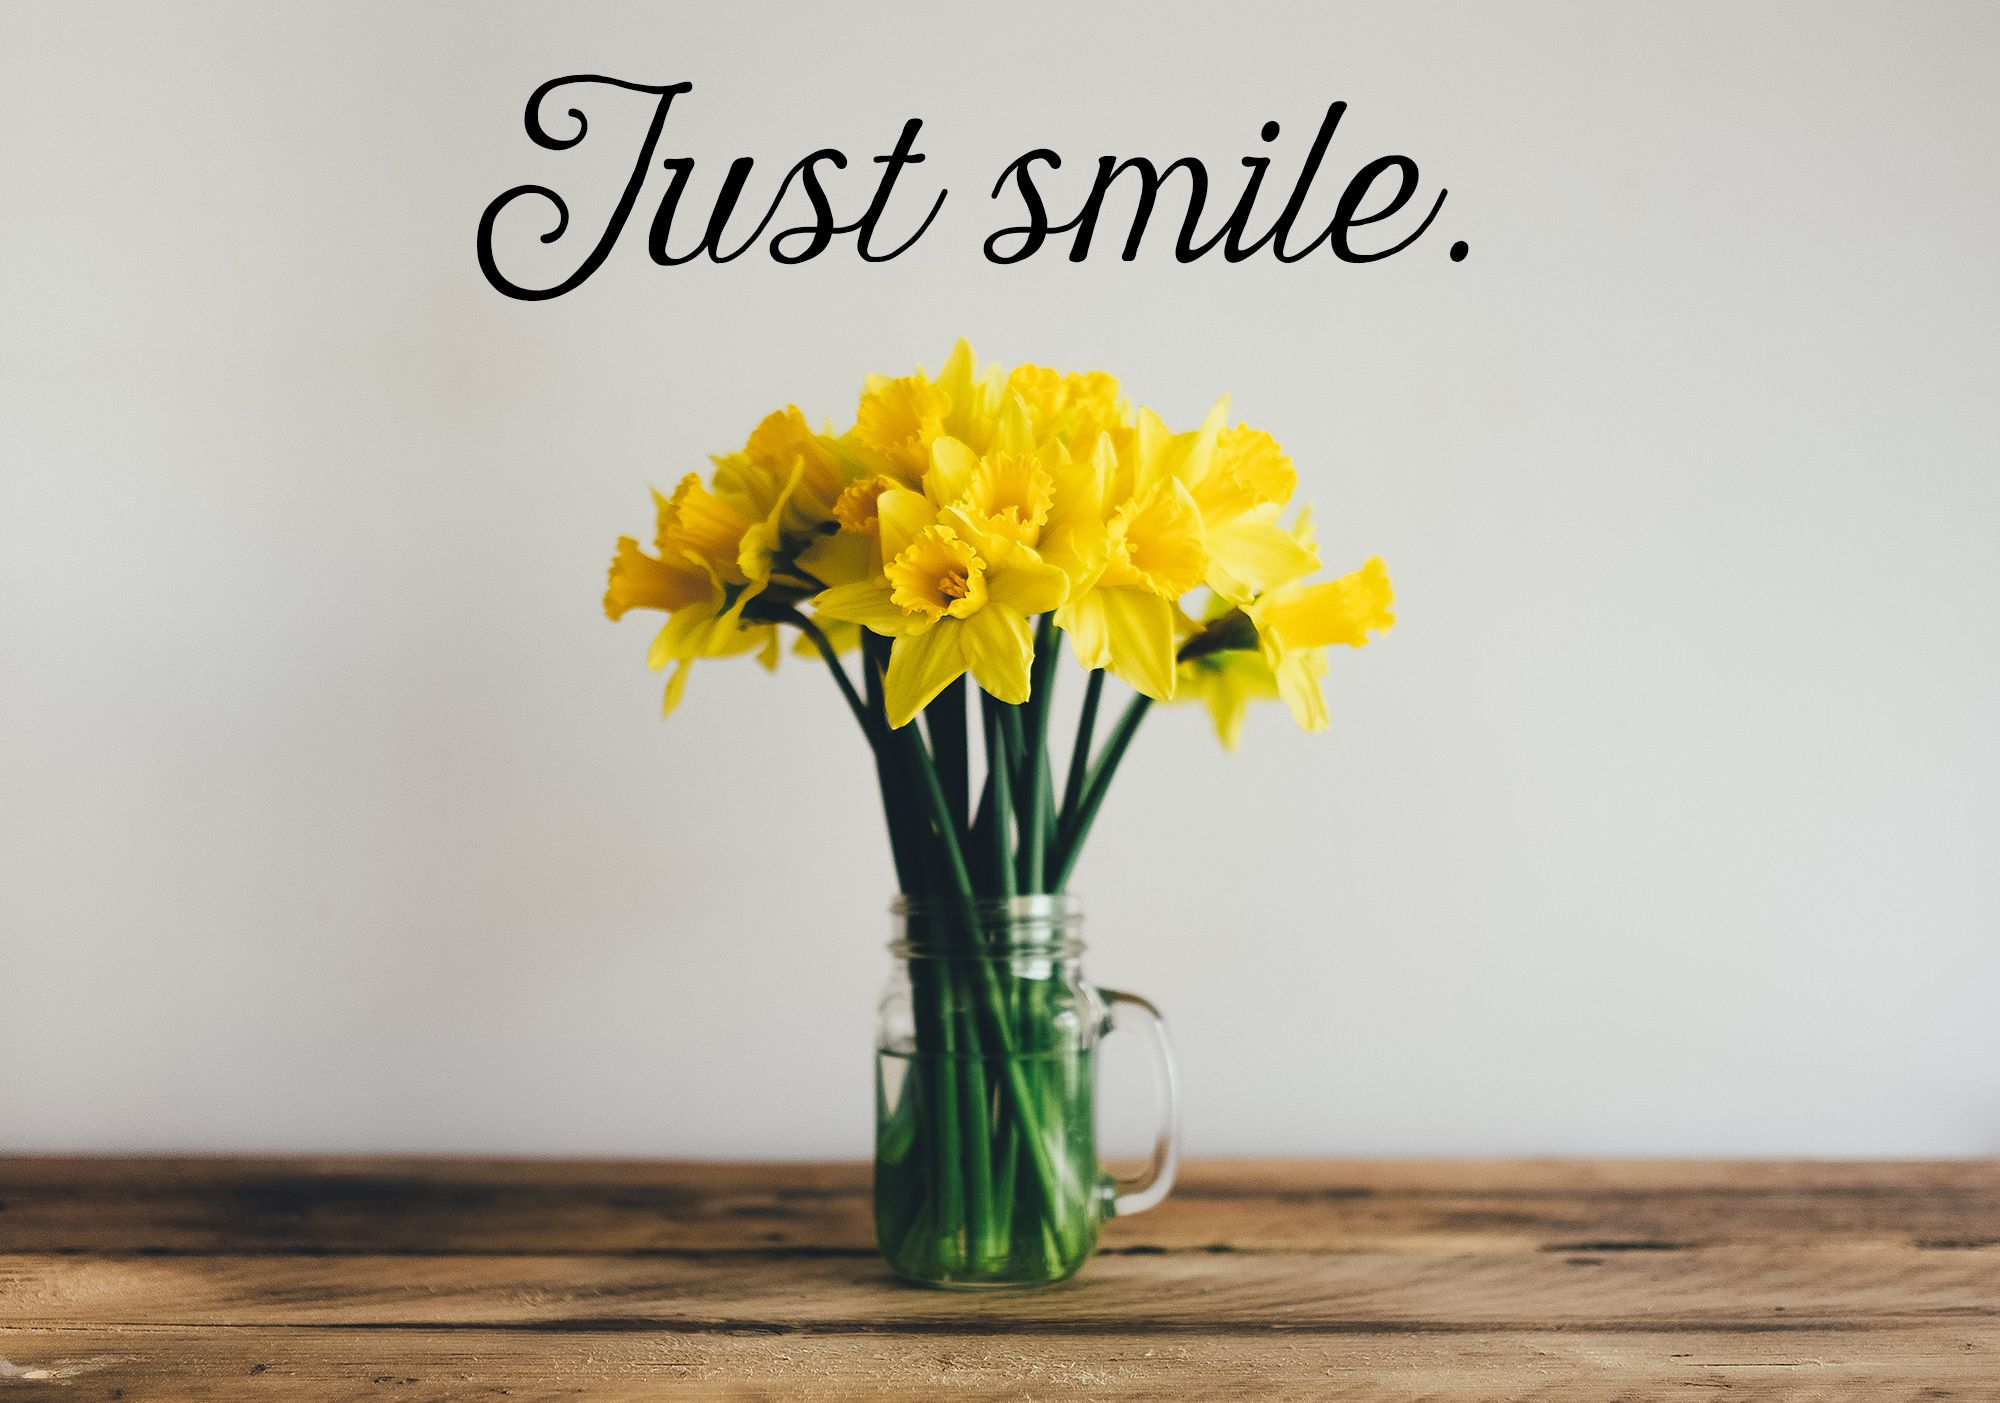 Quotes On Smile Smile Quotes  Quotes About Smiling